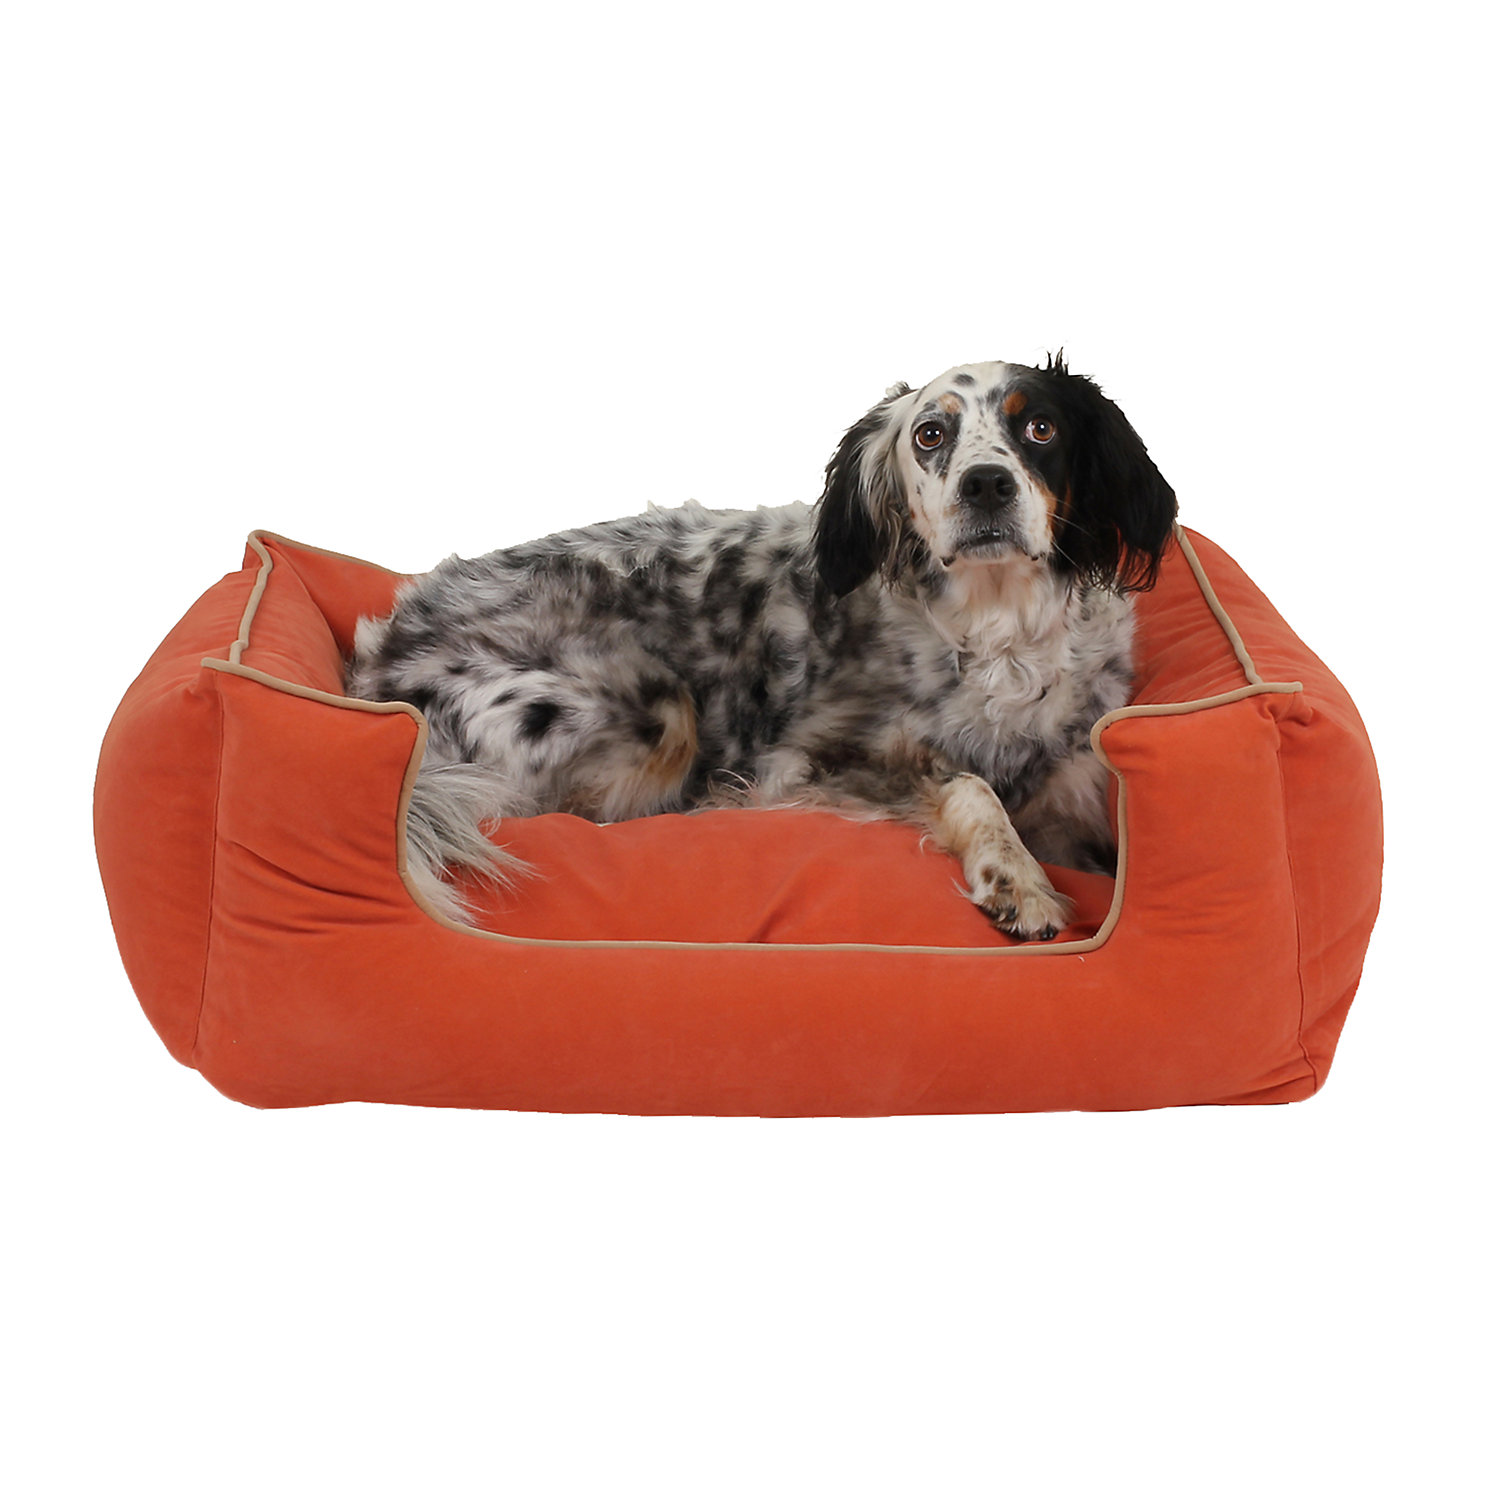 Carolina Pet Kuddle Lounge Low Profile Dog Bed in Apricot with Khaki Cording 30 L x 24 W Small